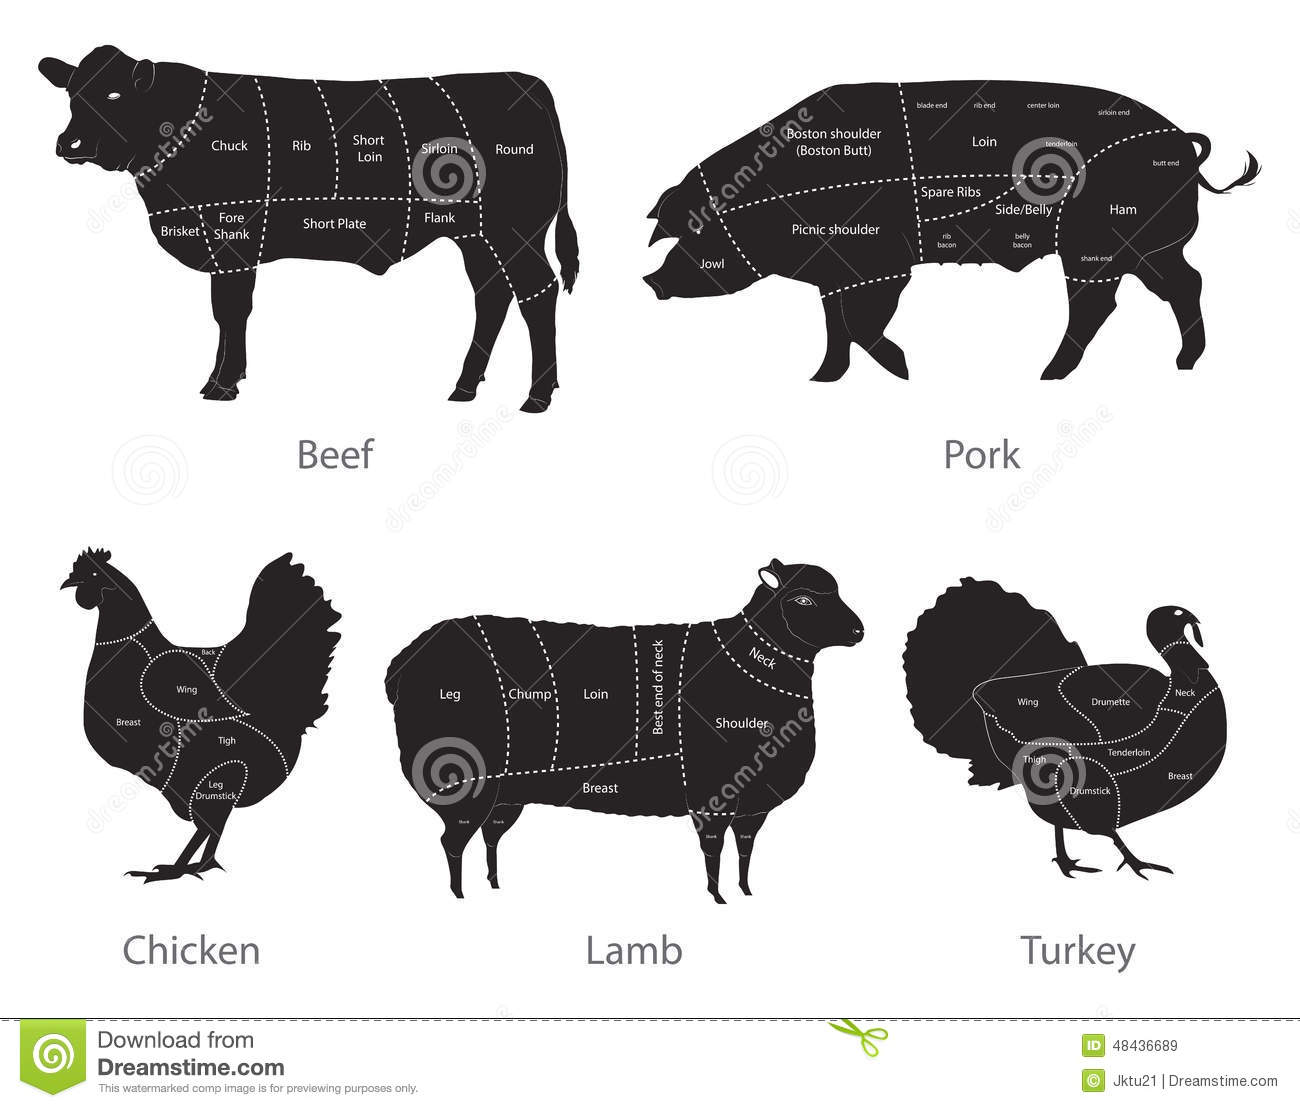 Diagram Of Cow Meat Cuts Beef Guide And Troubleshooting Pig Cut Farm Animal Stock Vector Illustration Sheep 48436689